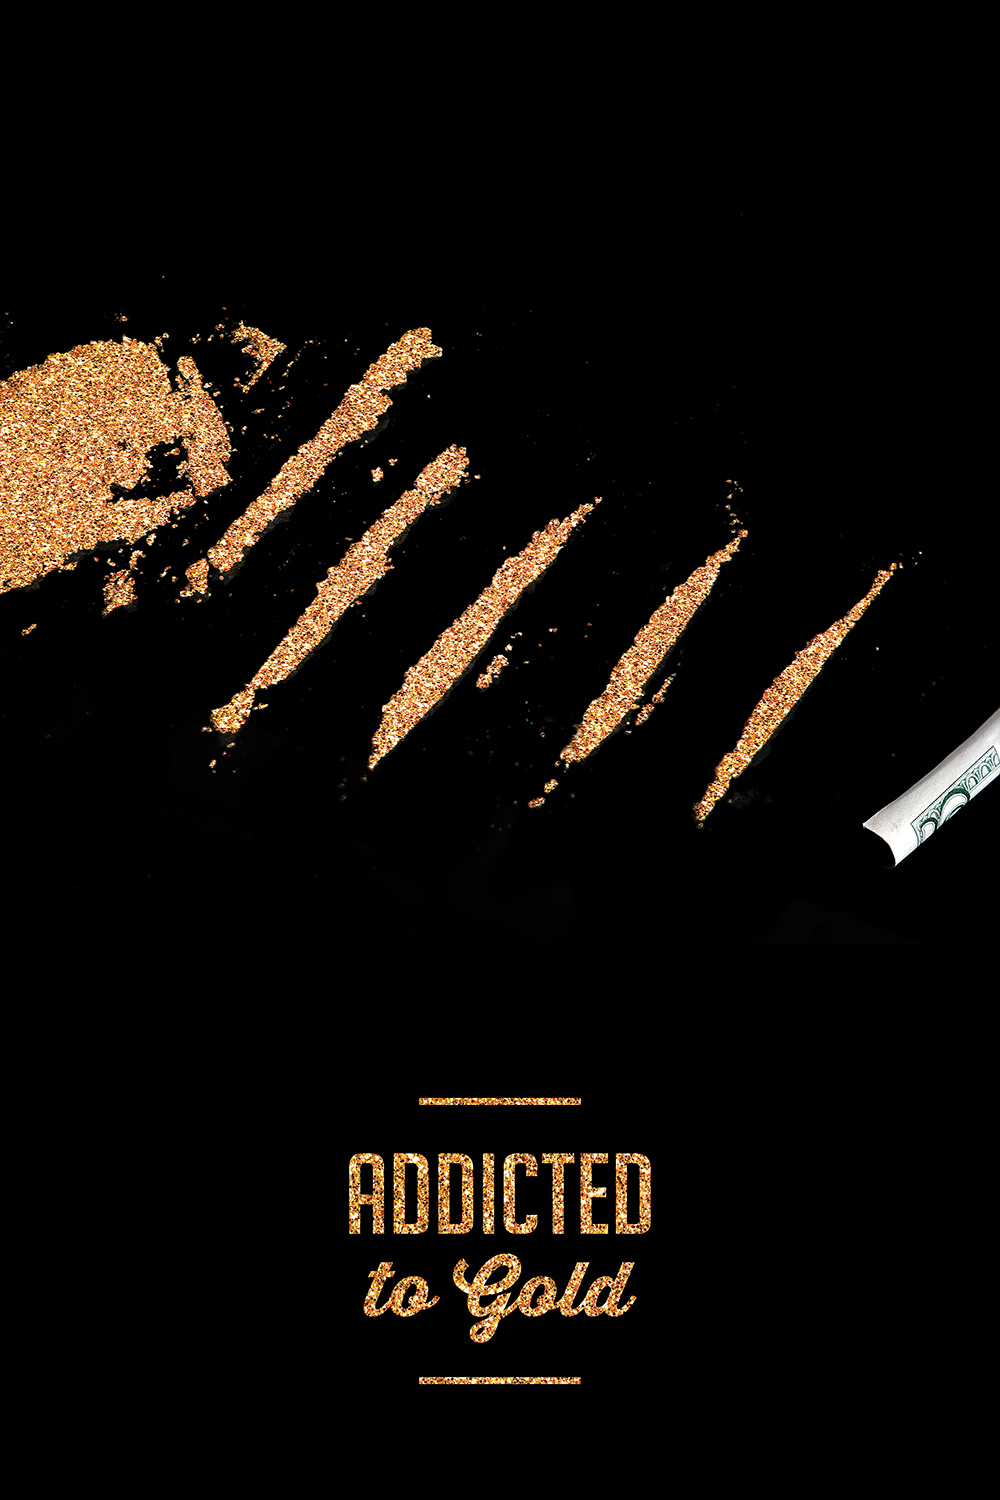 "Gold flakes cut up into lines with a rolled up dollar bill next to them and text underneath that says ""Addicted to gold"" on a black background"